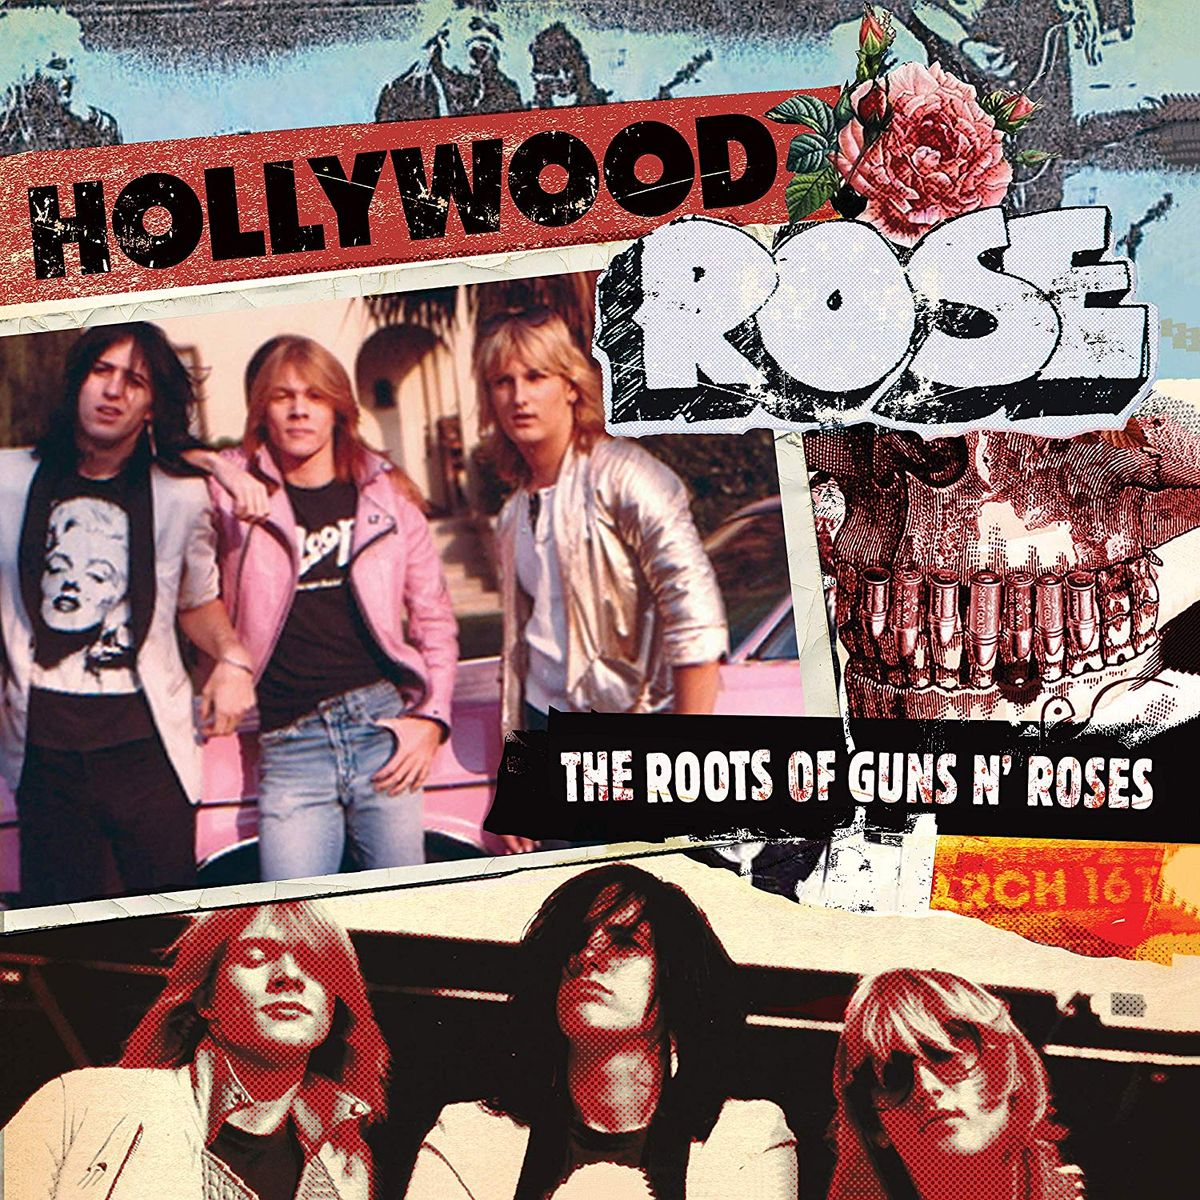 Hollywood Rose. The Roots of Guns N' Roses